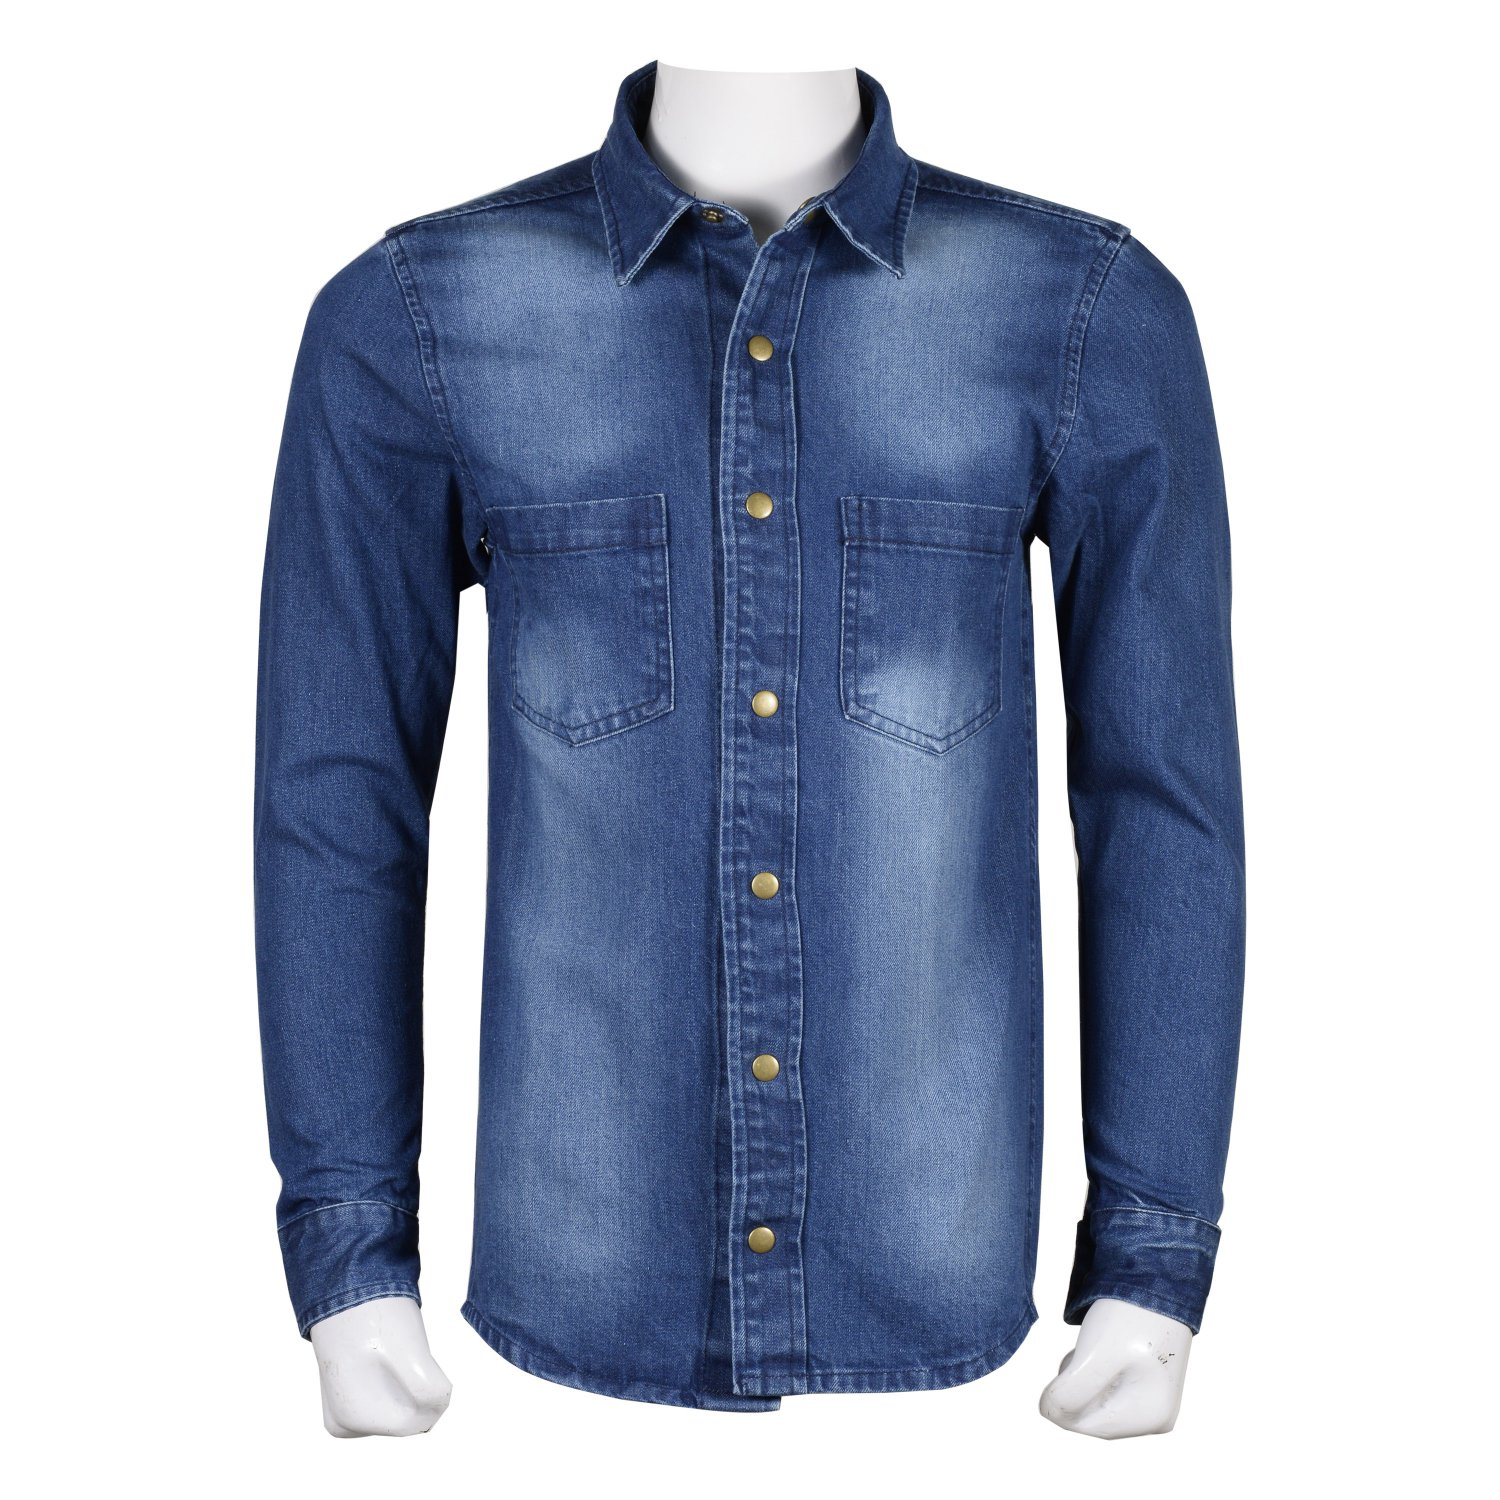 Small Men's Casual Button Down Blue Denim Full Sleeve Shirt